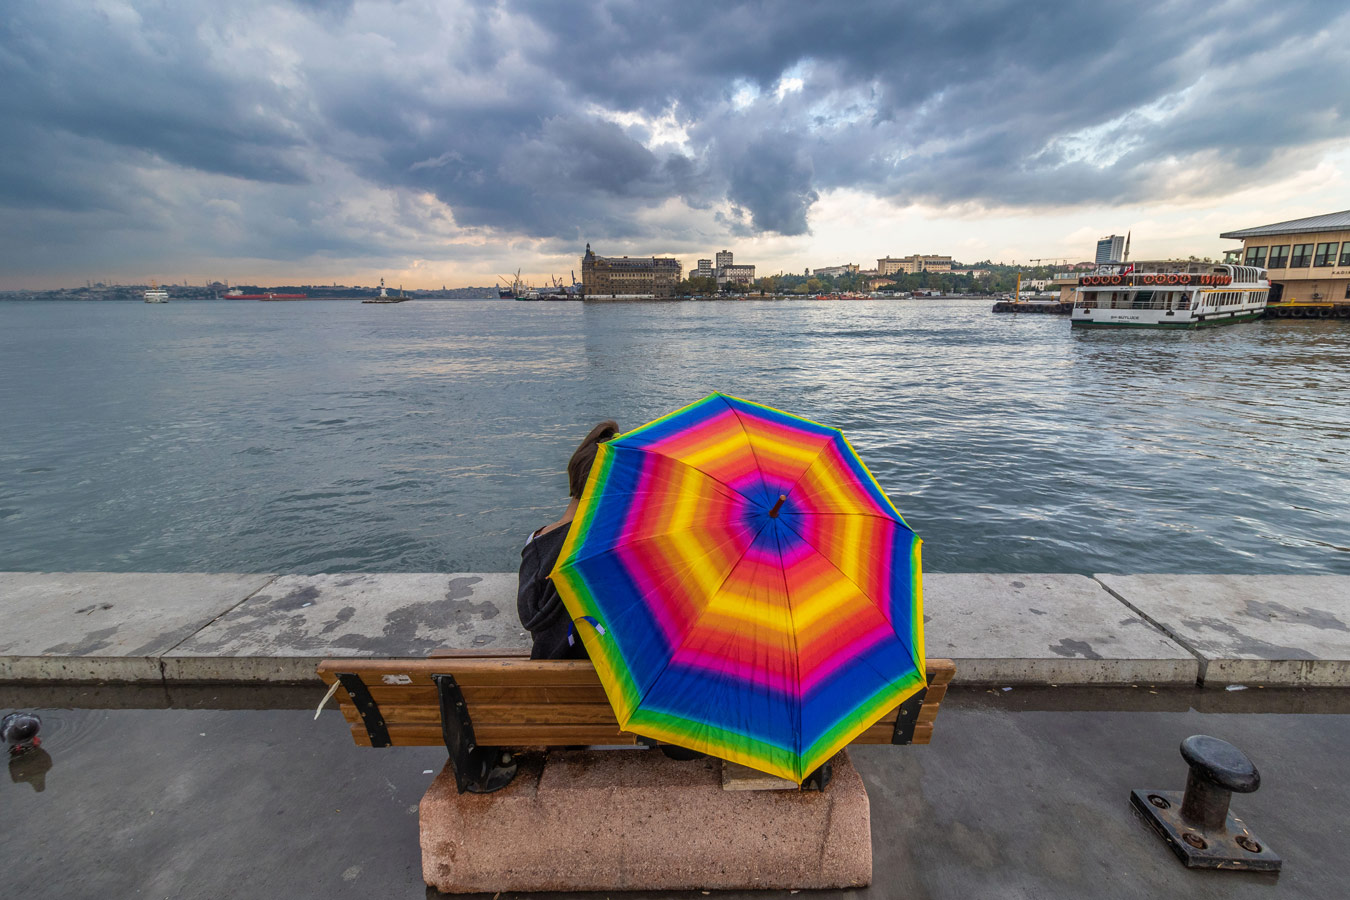 Colorful Umbrella, © Mehran Cheraghchi Bazar, Iran, Filter: Polarizing (PL), Cityscape Photography x Filter Photo Contest - Marumi